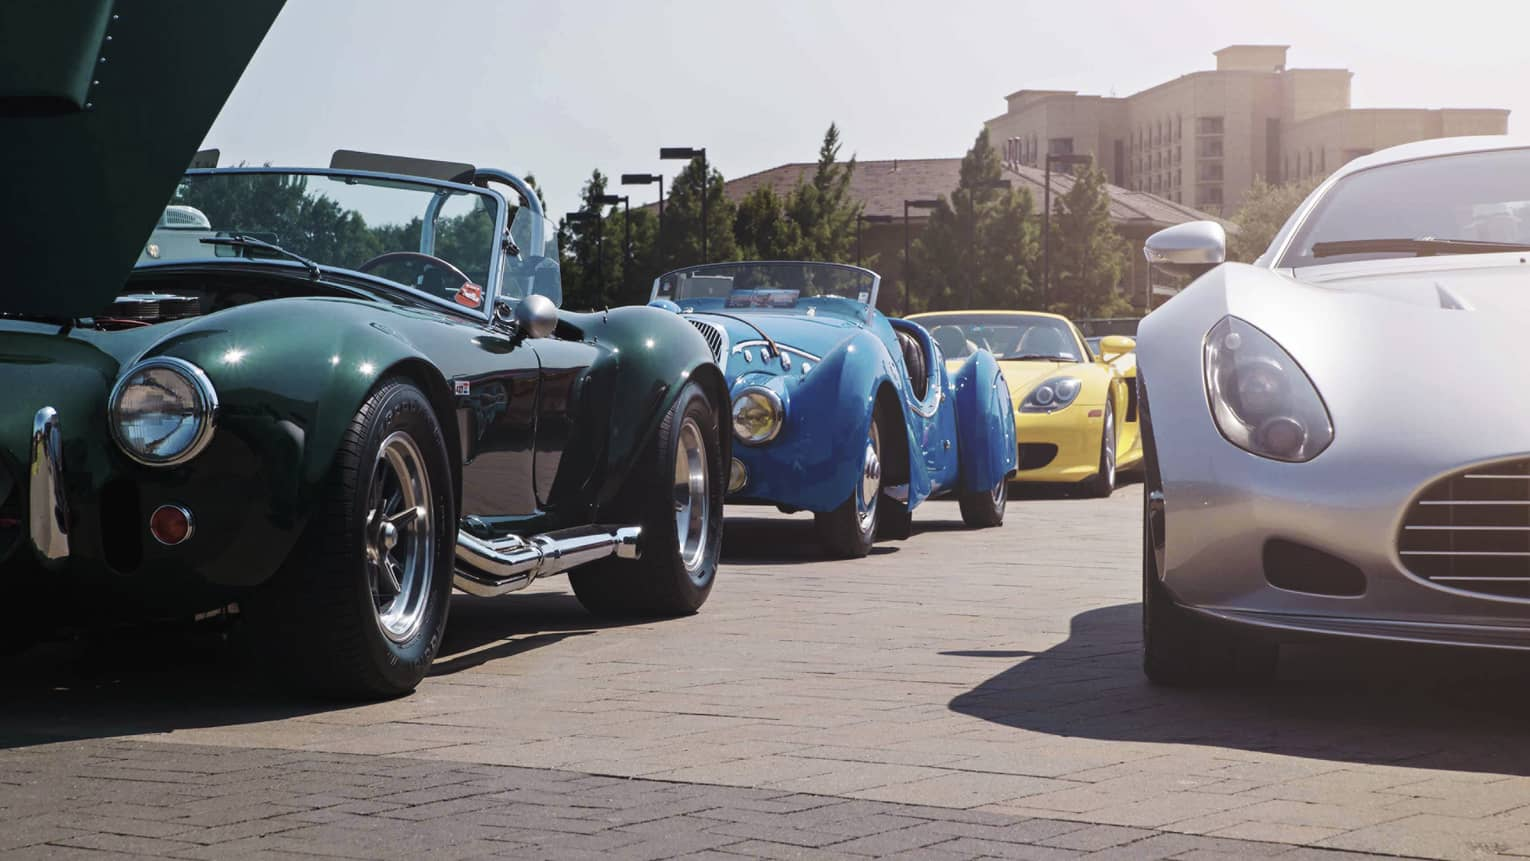 Green, blue, yellow and white luxury sports cars parked along road on sunny day, Four Seasons hotel in background